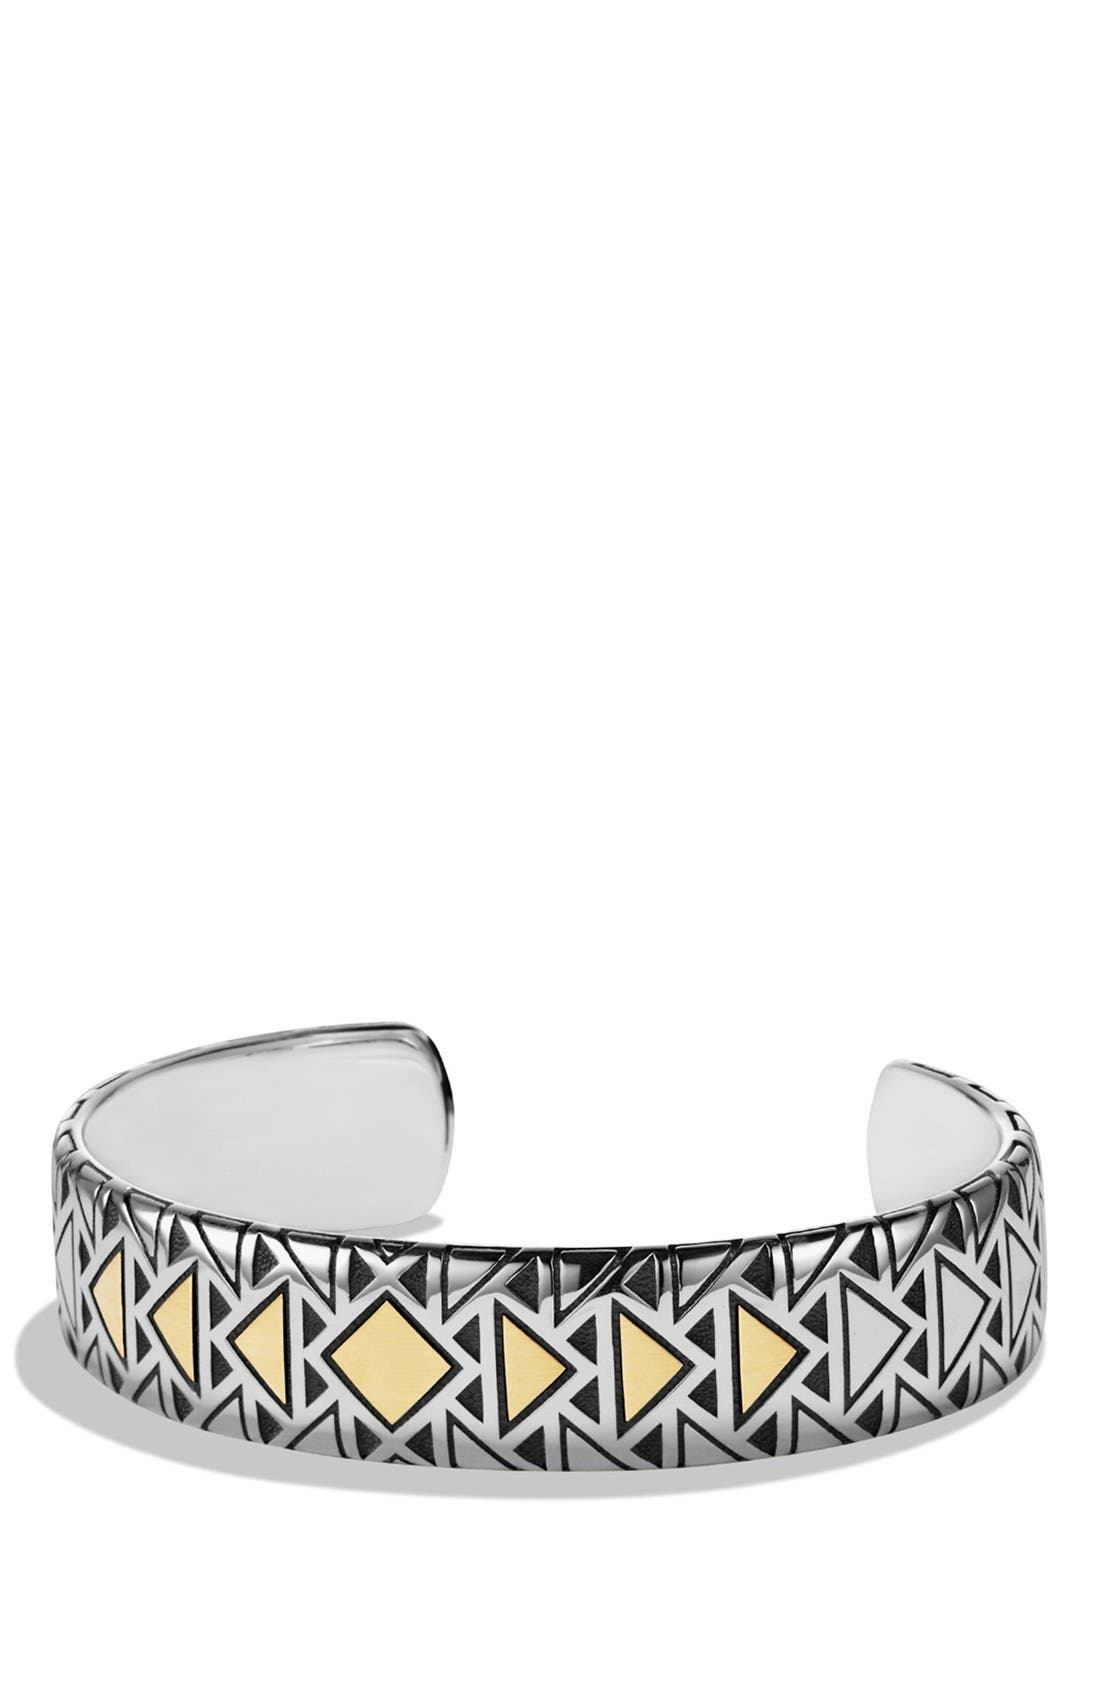 Southwest Cuff Bracelet with 18K Gold,                         Main,                         color, Two Tone